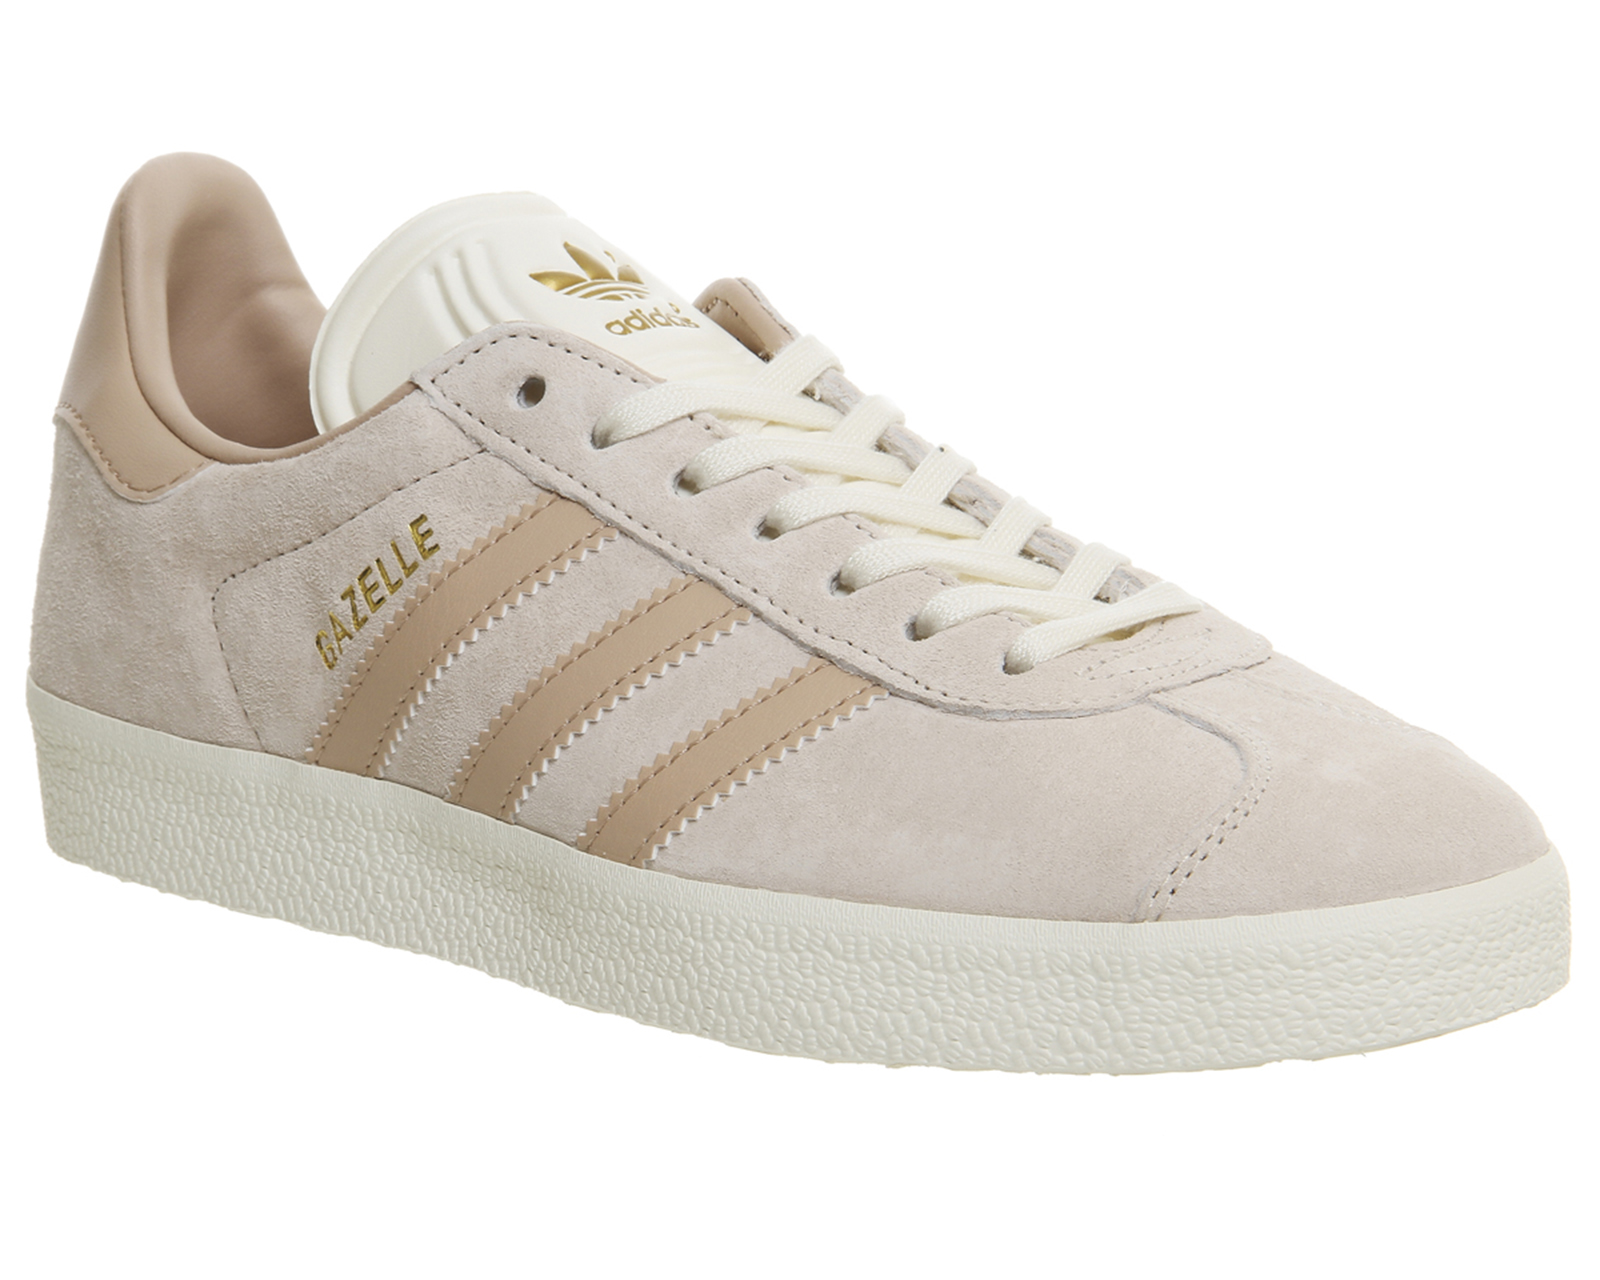 womens adidas gazelle trainers linen dust pearl cream. Black Bedroom Furniture Sets. Home Design Ideas